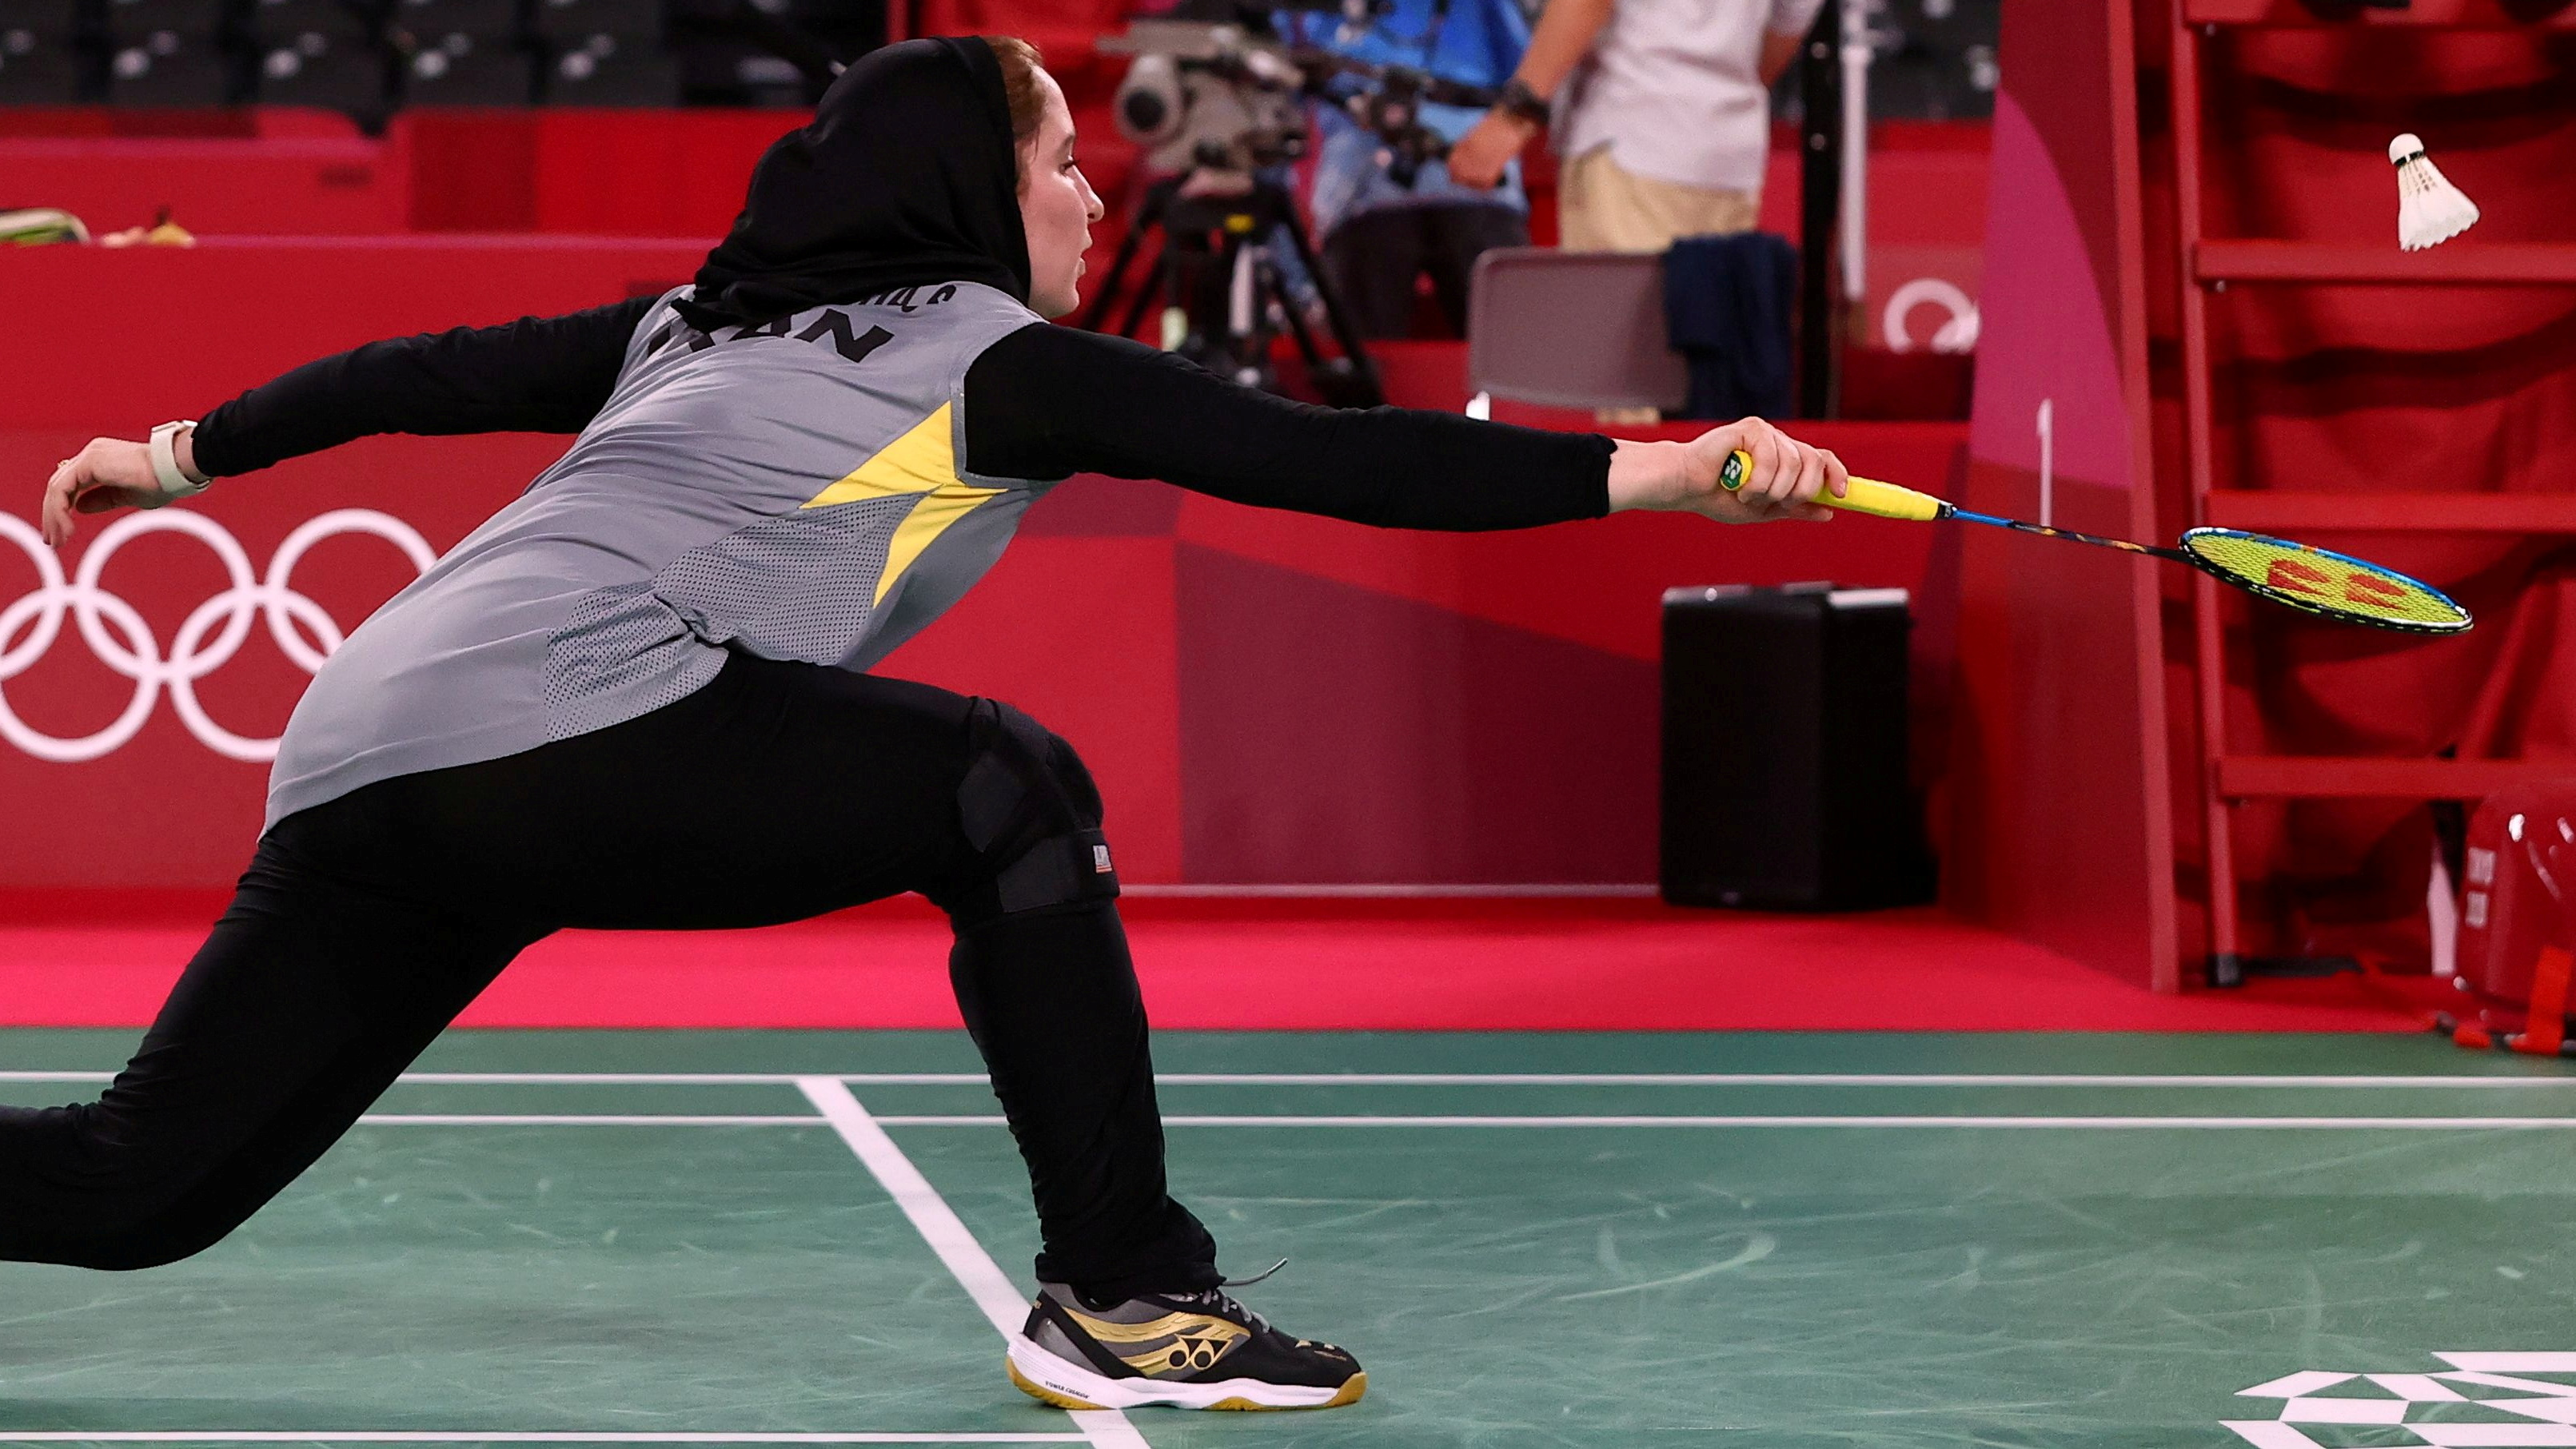 Tokyo 2020 Olympics - Badminton - Women's Singles - Group Stage - MFS - Musashino Forest Sport Plaza, Tokyo, Japan – July 28, 2021. Soraya Aghaeihajiagha of Iran in action during the match against He Bingjiao of China. REUTERS/Leonhard Foeger/File Photo